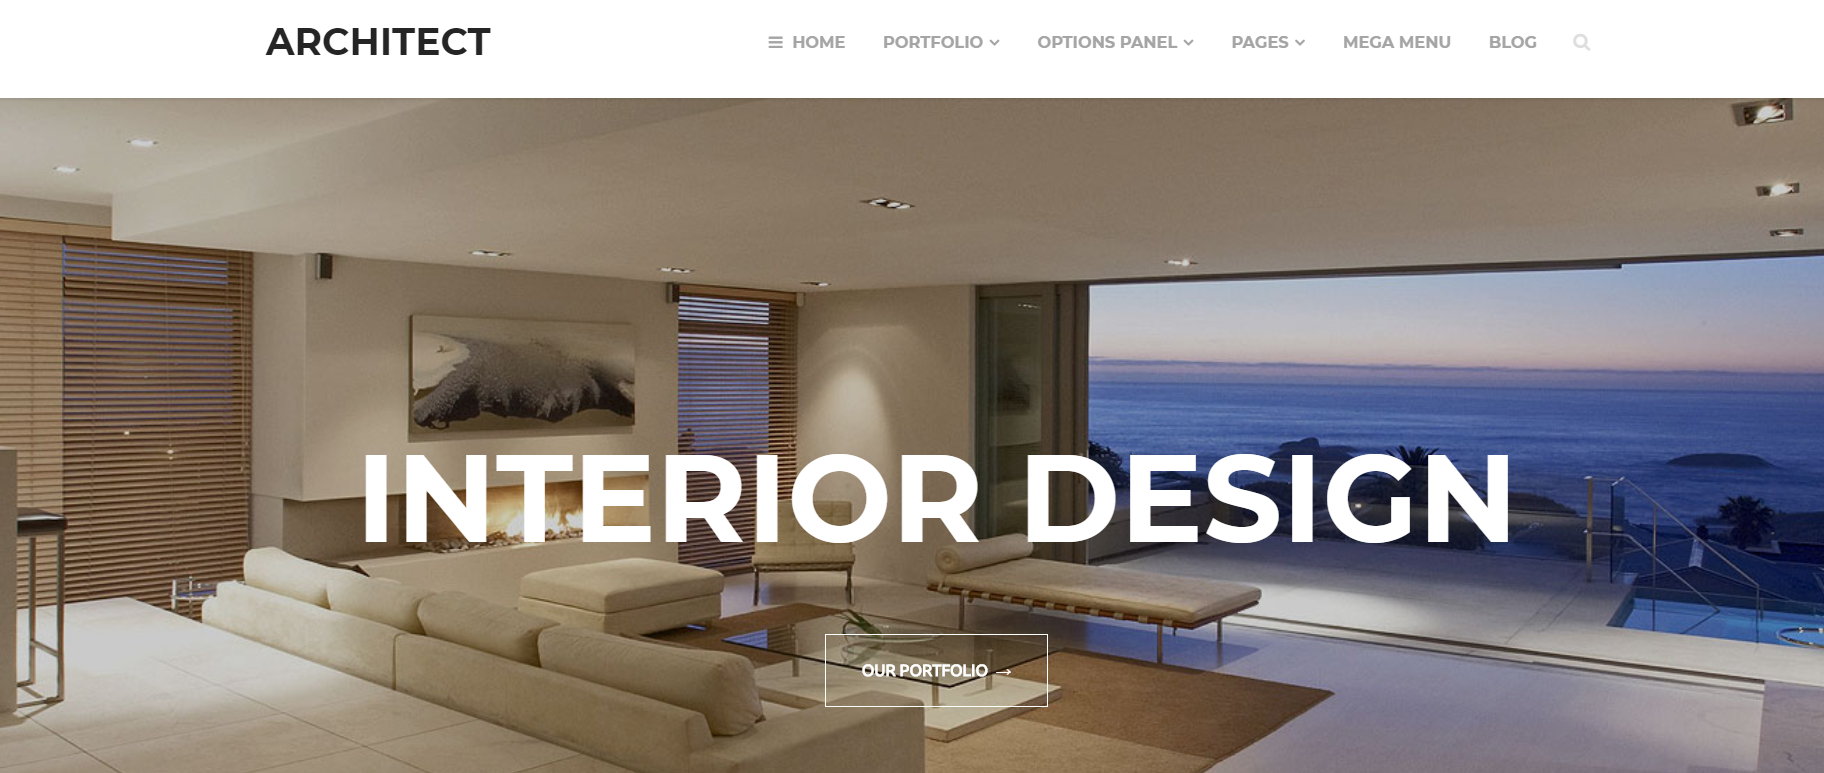 Interior Design   13 Best WordPress Themes For All Types Of Blogs & Websites